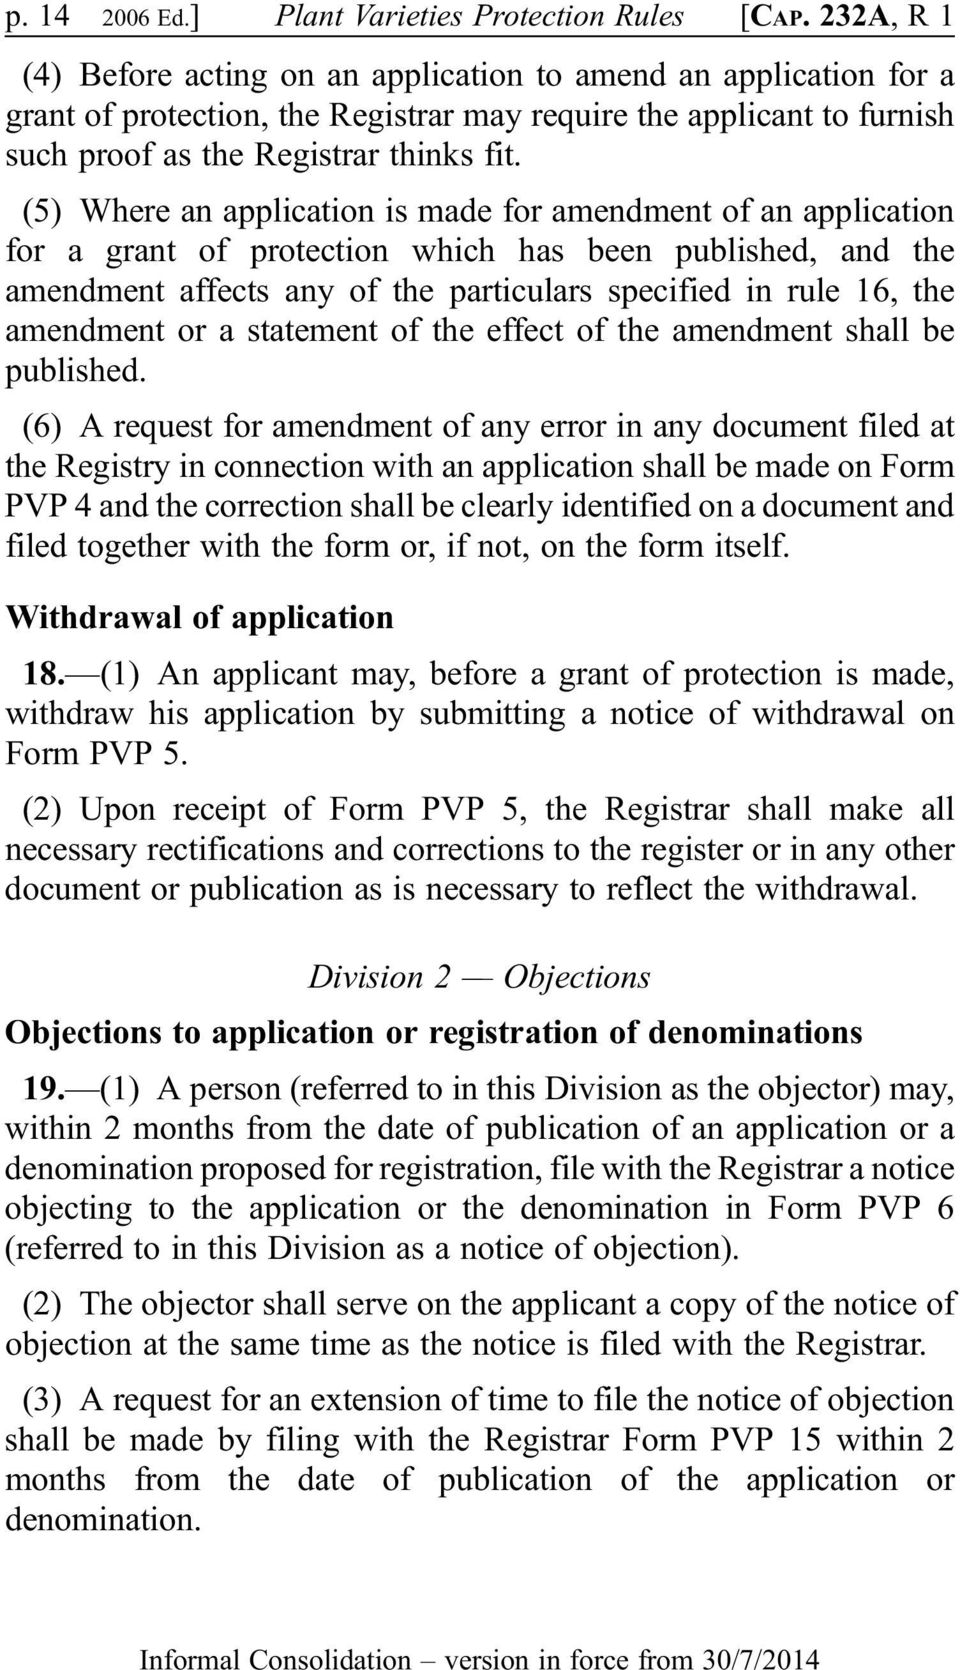 (5) Where an application is made for amendment of an application for a grant of protection which has been published, and the amendment affects any of the particulars specified in rule 16, the